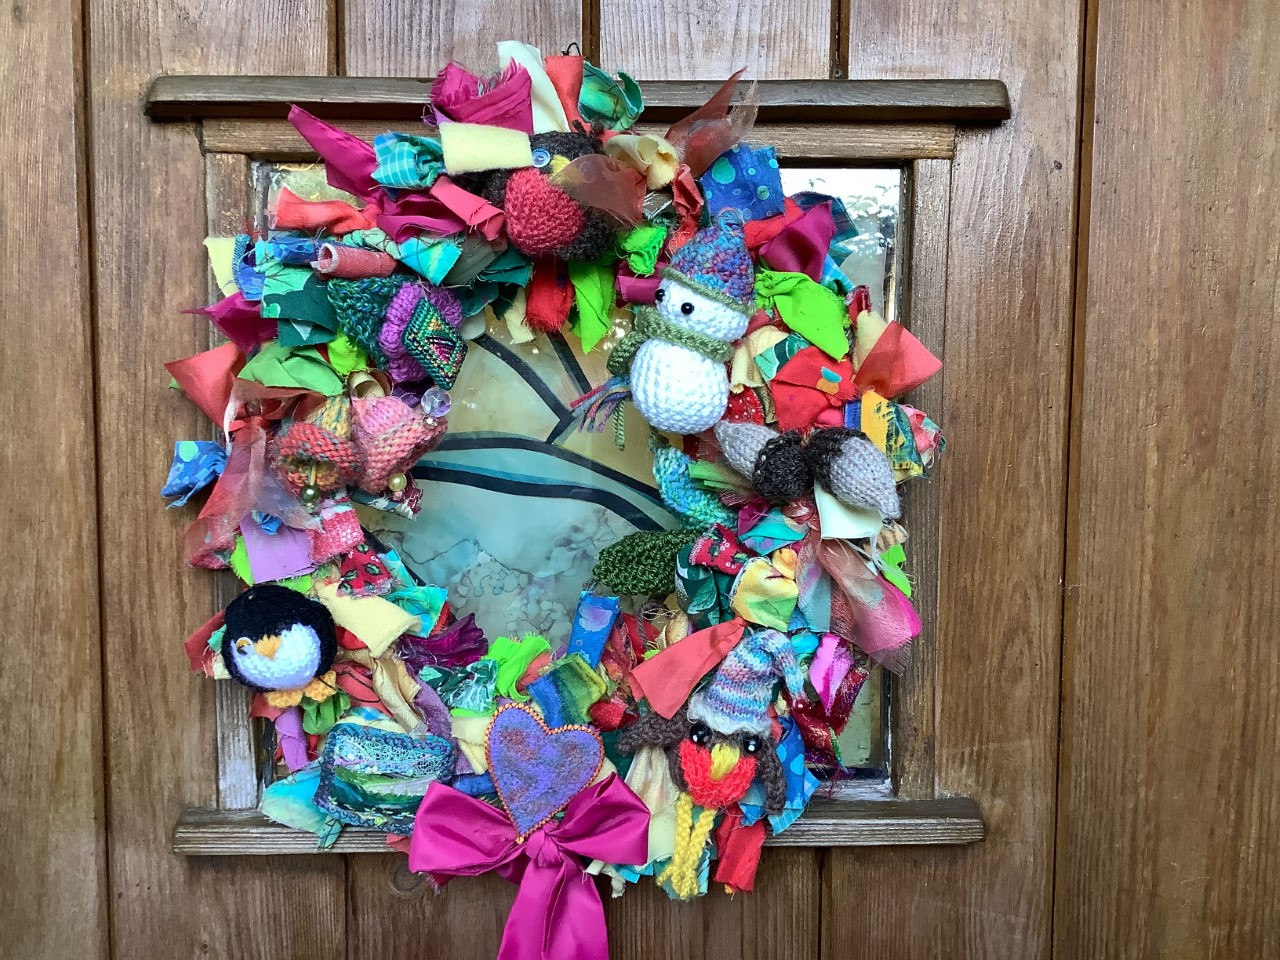 Christmas wreath made up of recycled materials